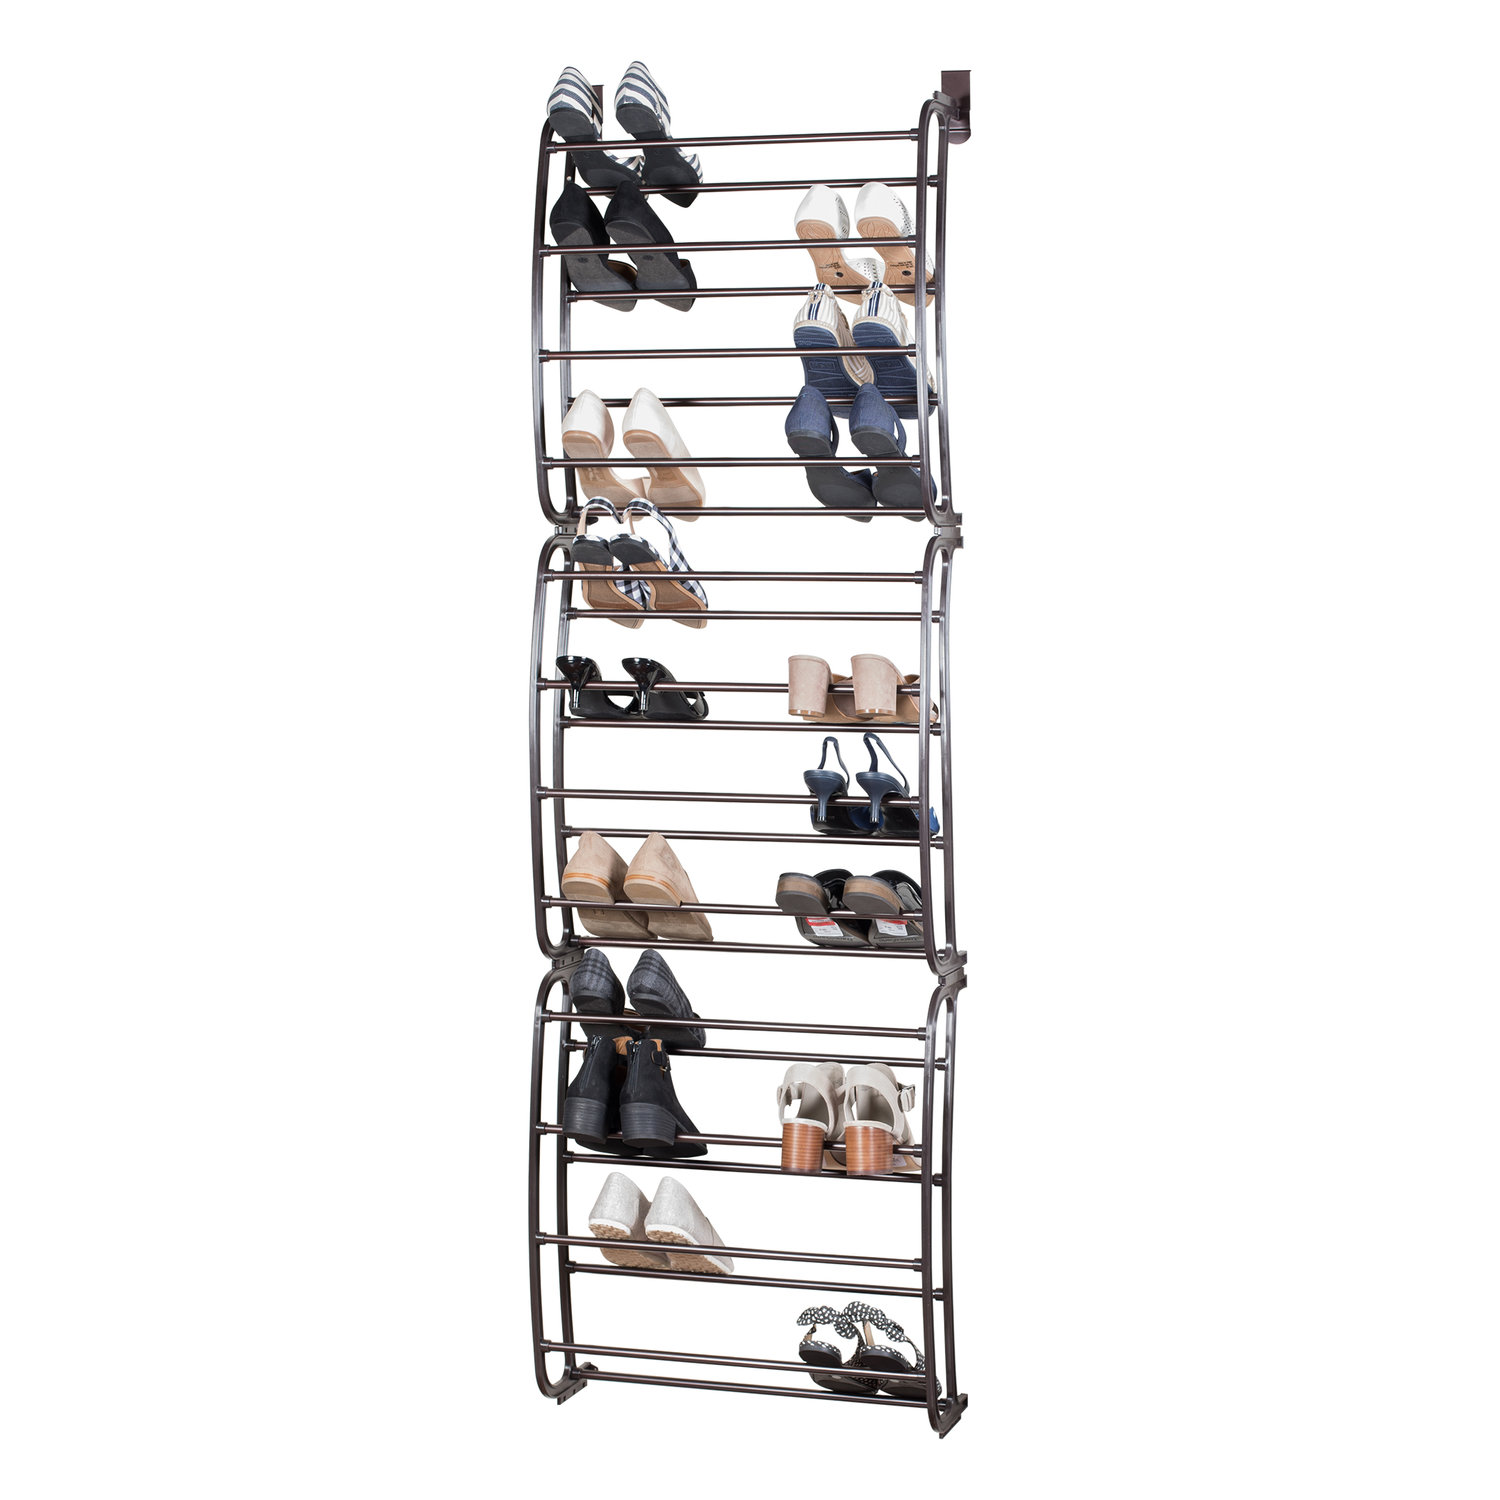 parts hight on wife to steel shelf polished cheap happy rack shoe stainless life rings do scaffolding made id with adjustable top from easy